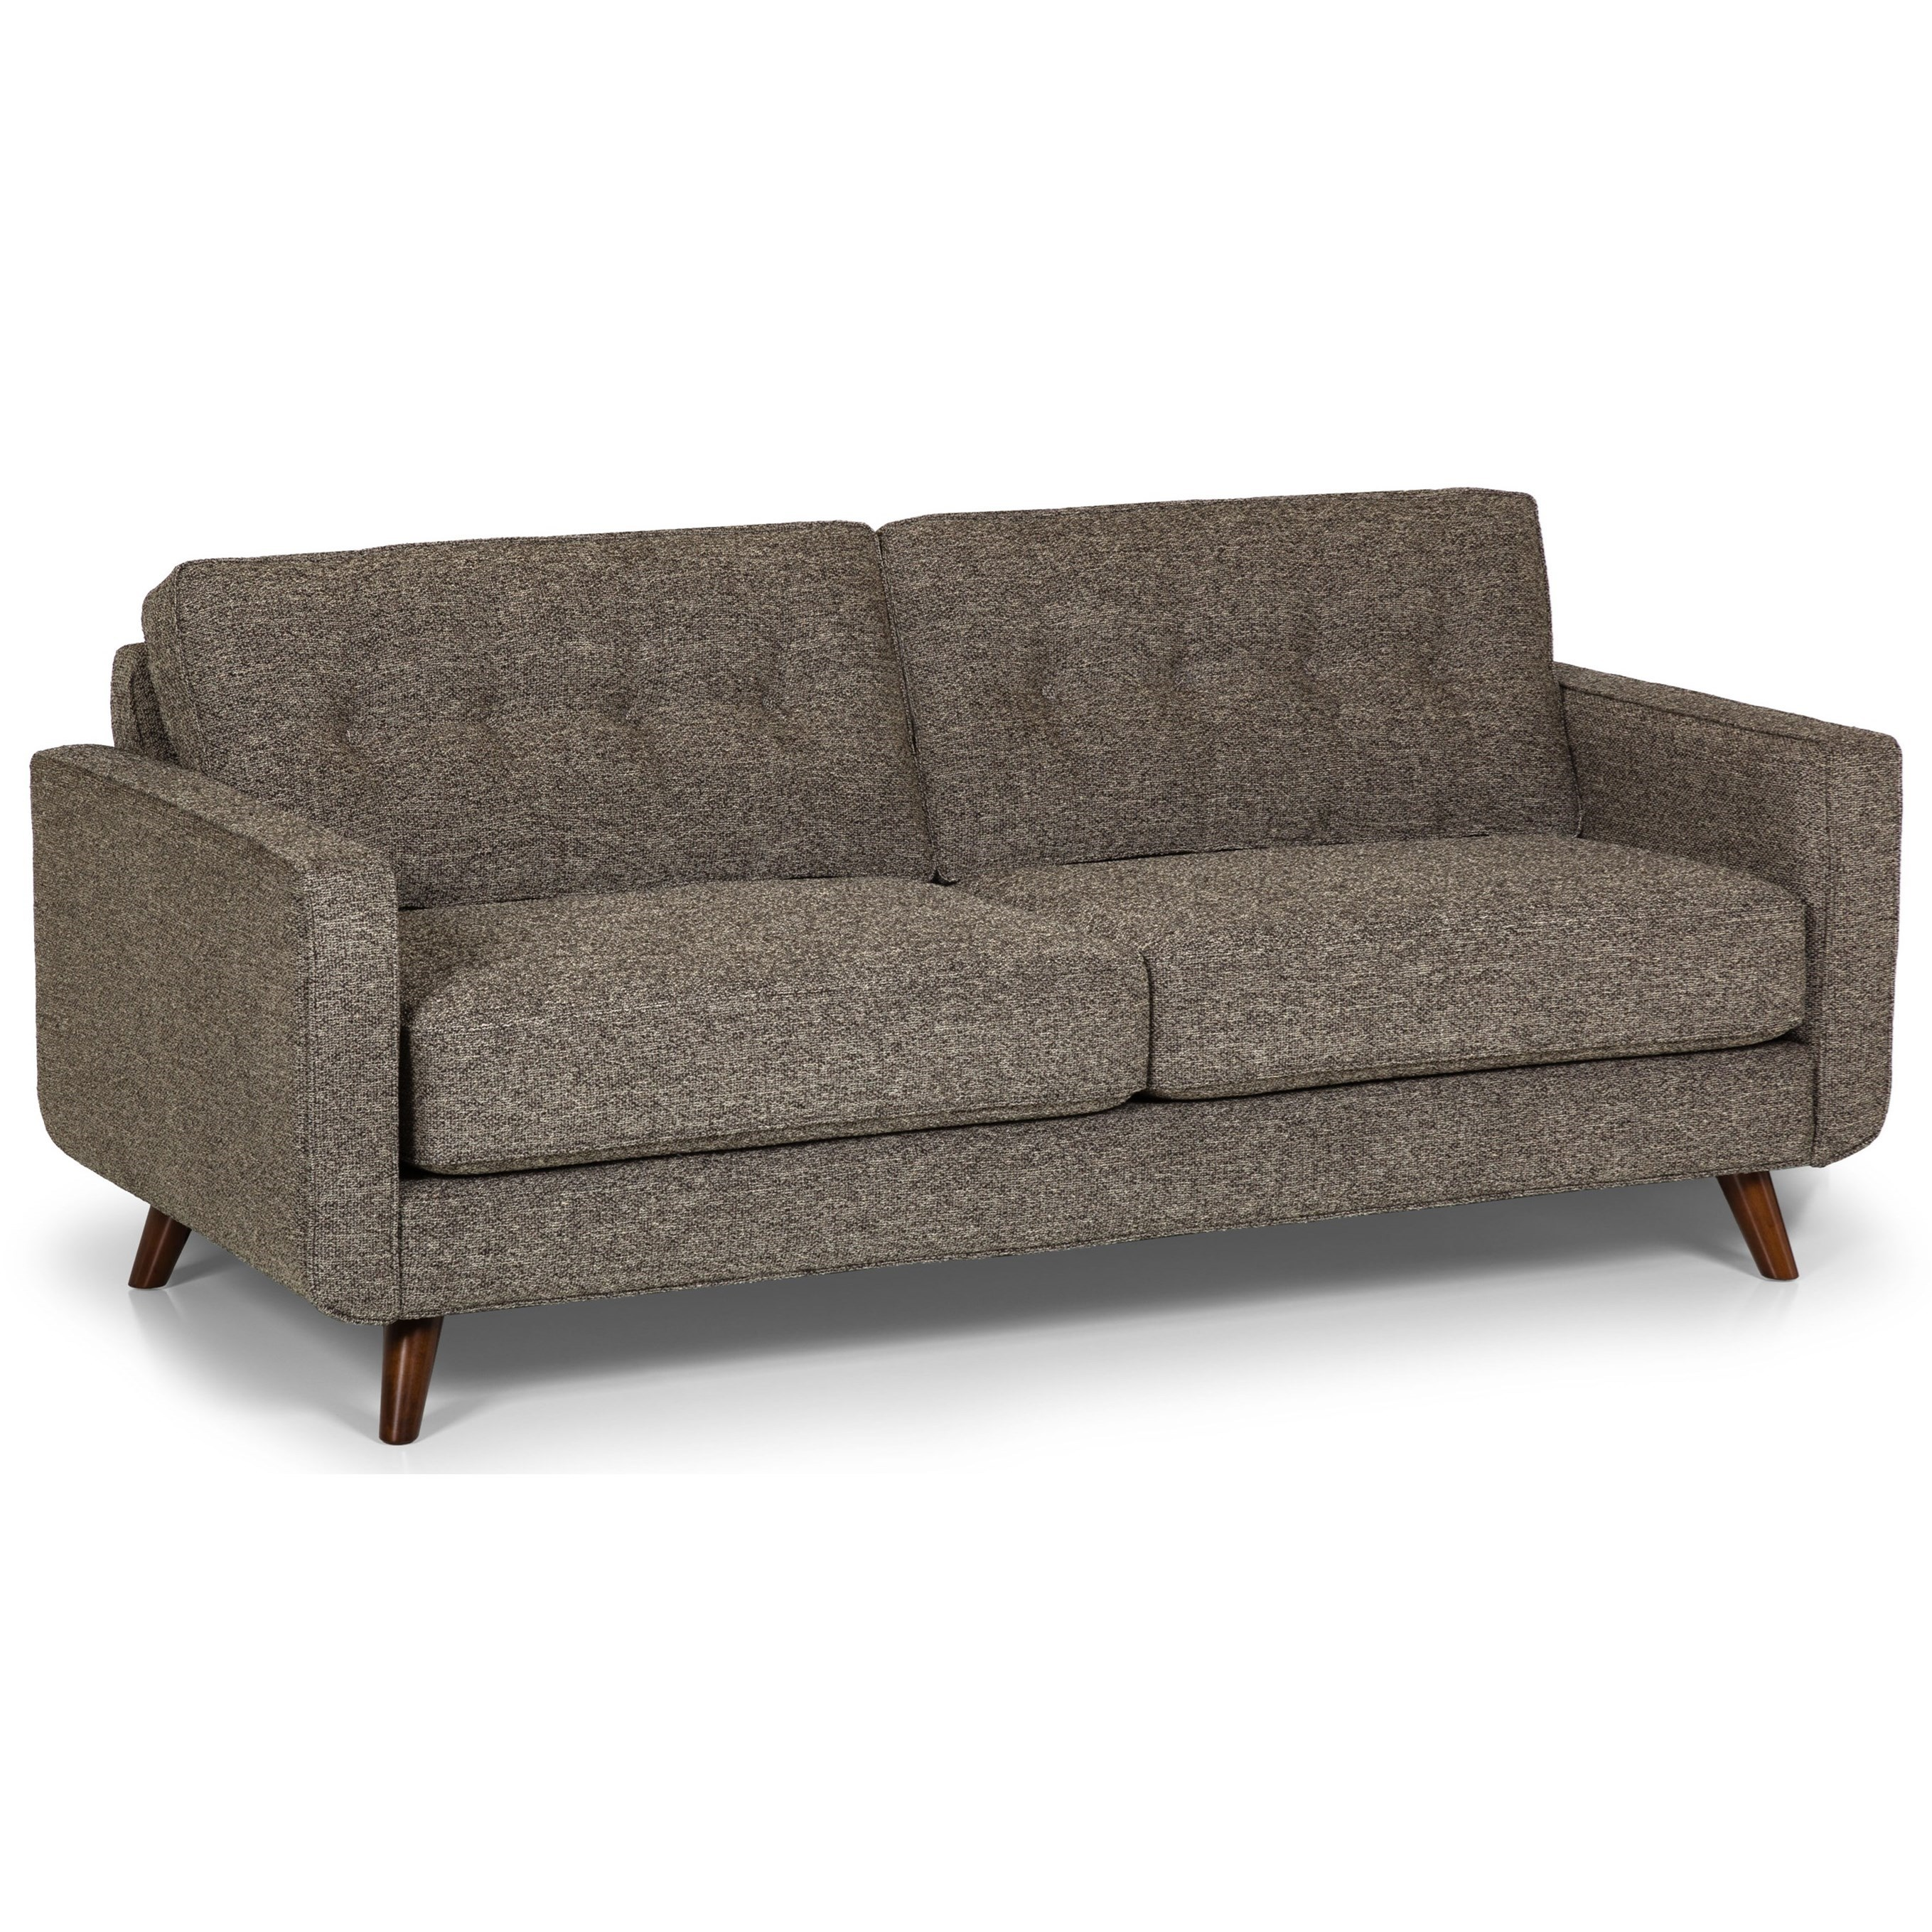 Casa Padrino Bar Weinschrank Big Sofa Retro